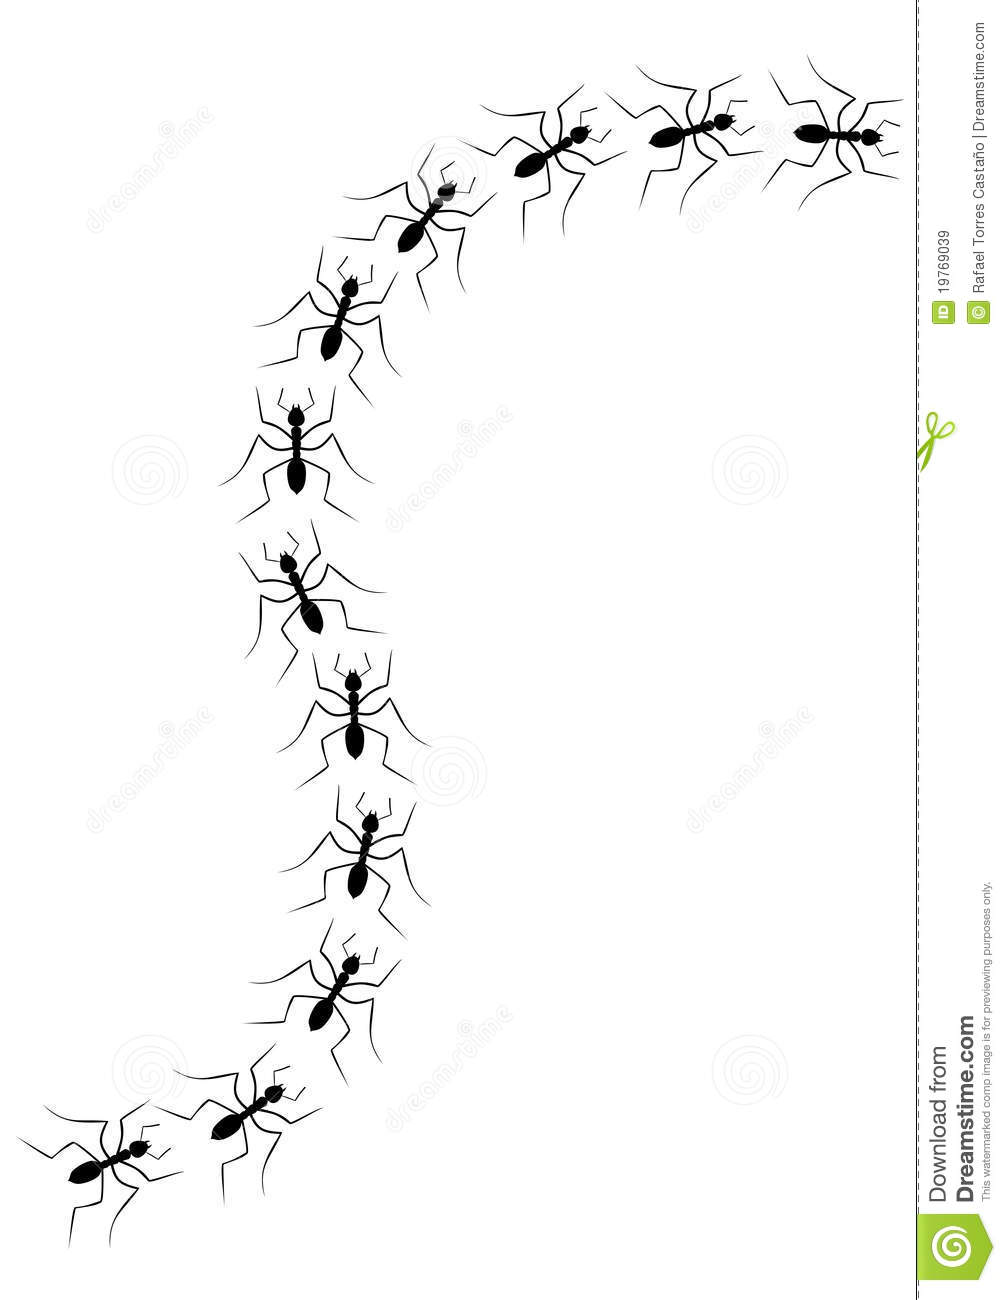 Ants In A Line Forest.